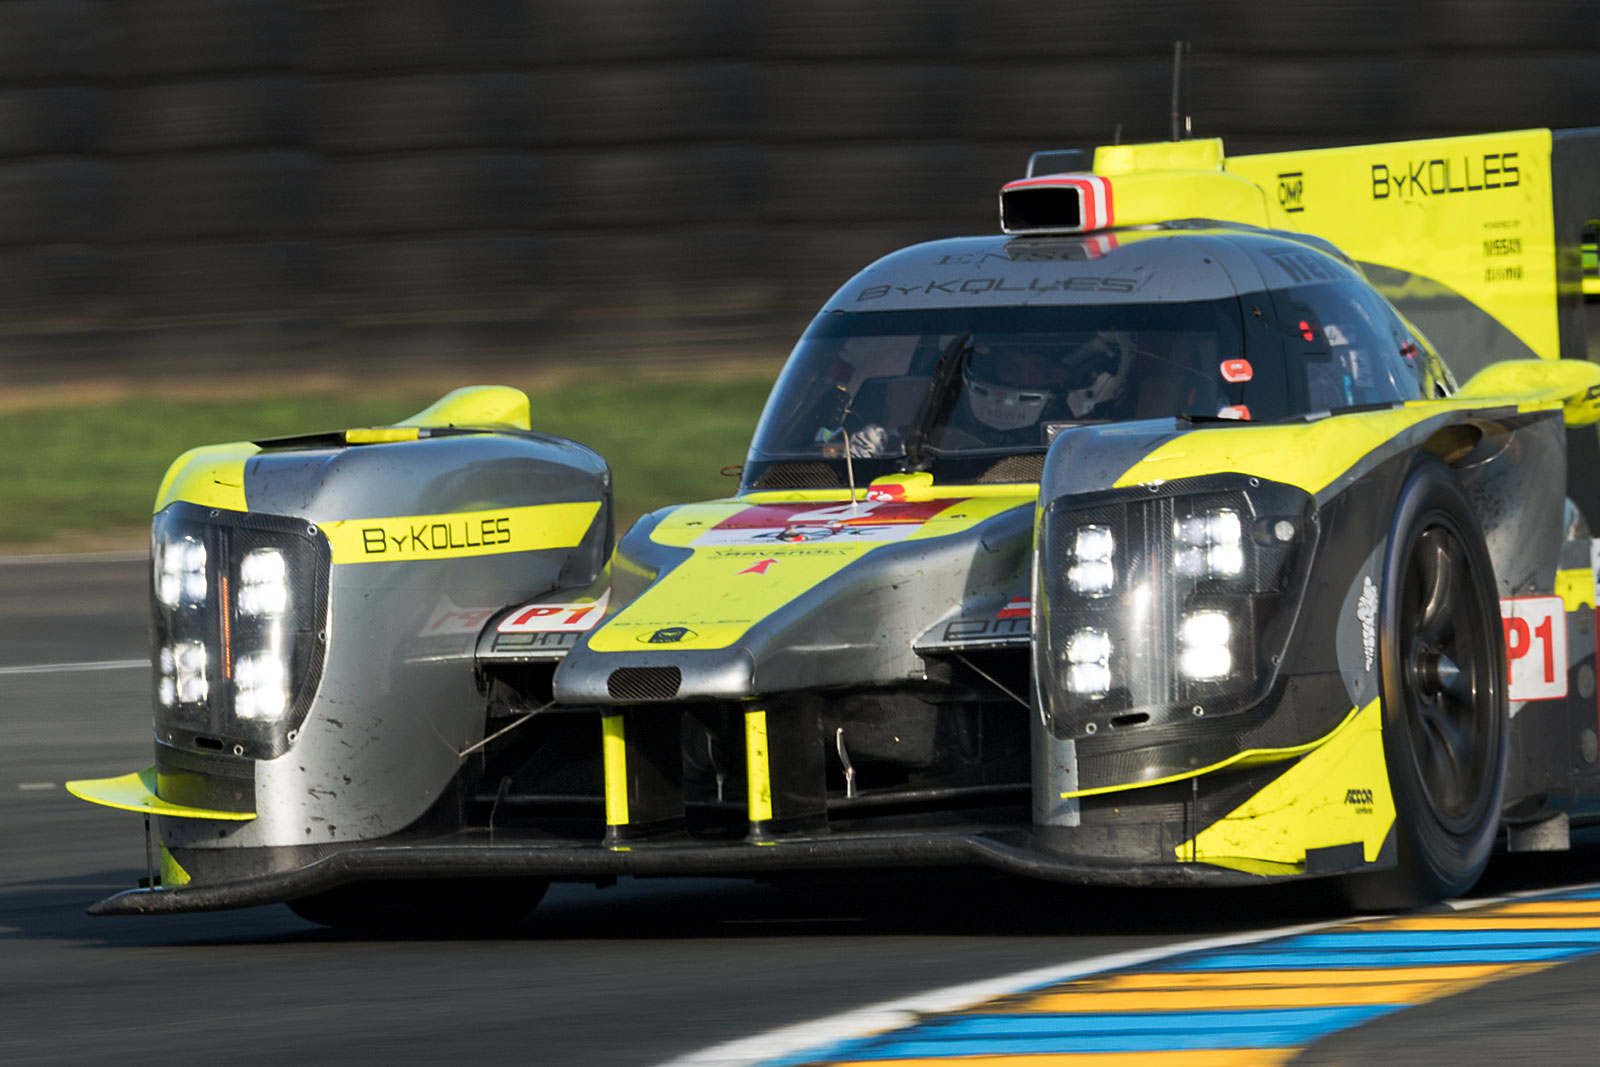 ByKolles test major upgrade at Spa